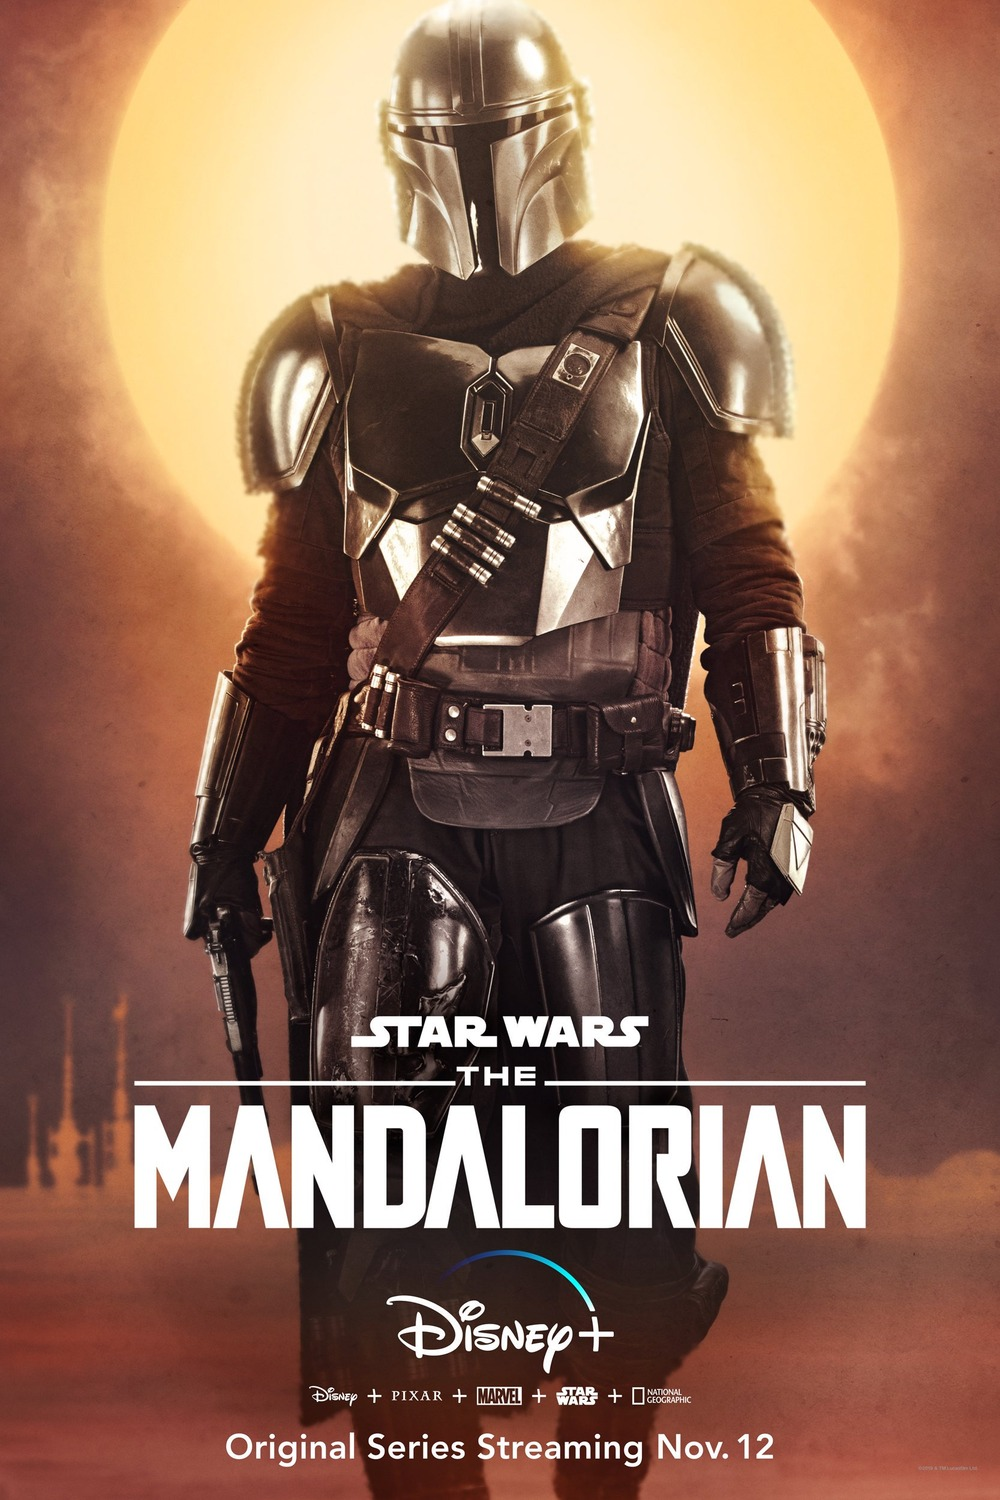 Star Wars: The Mandalorian review: This is the Star Wars series you are looking for